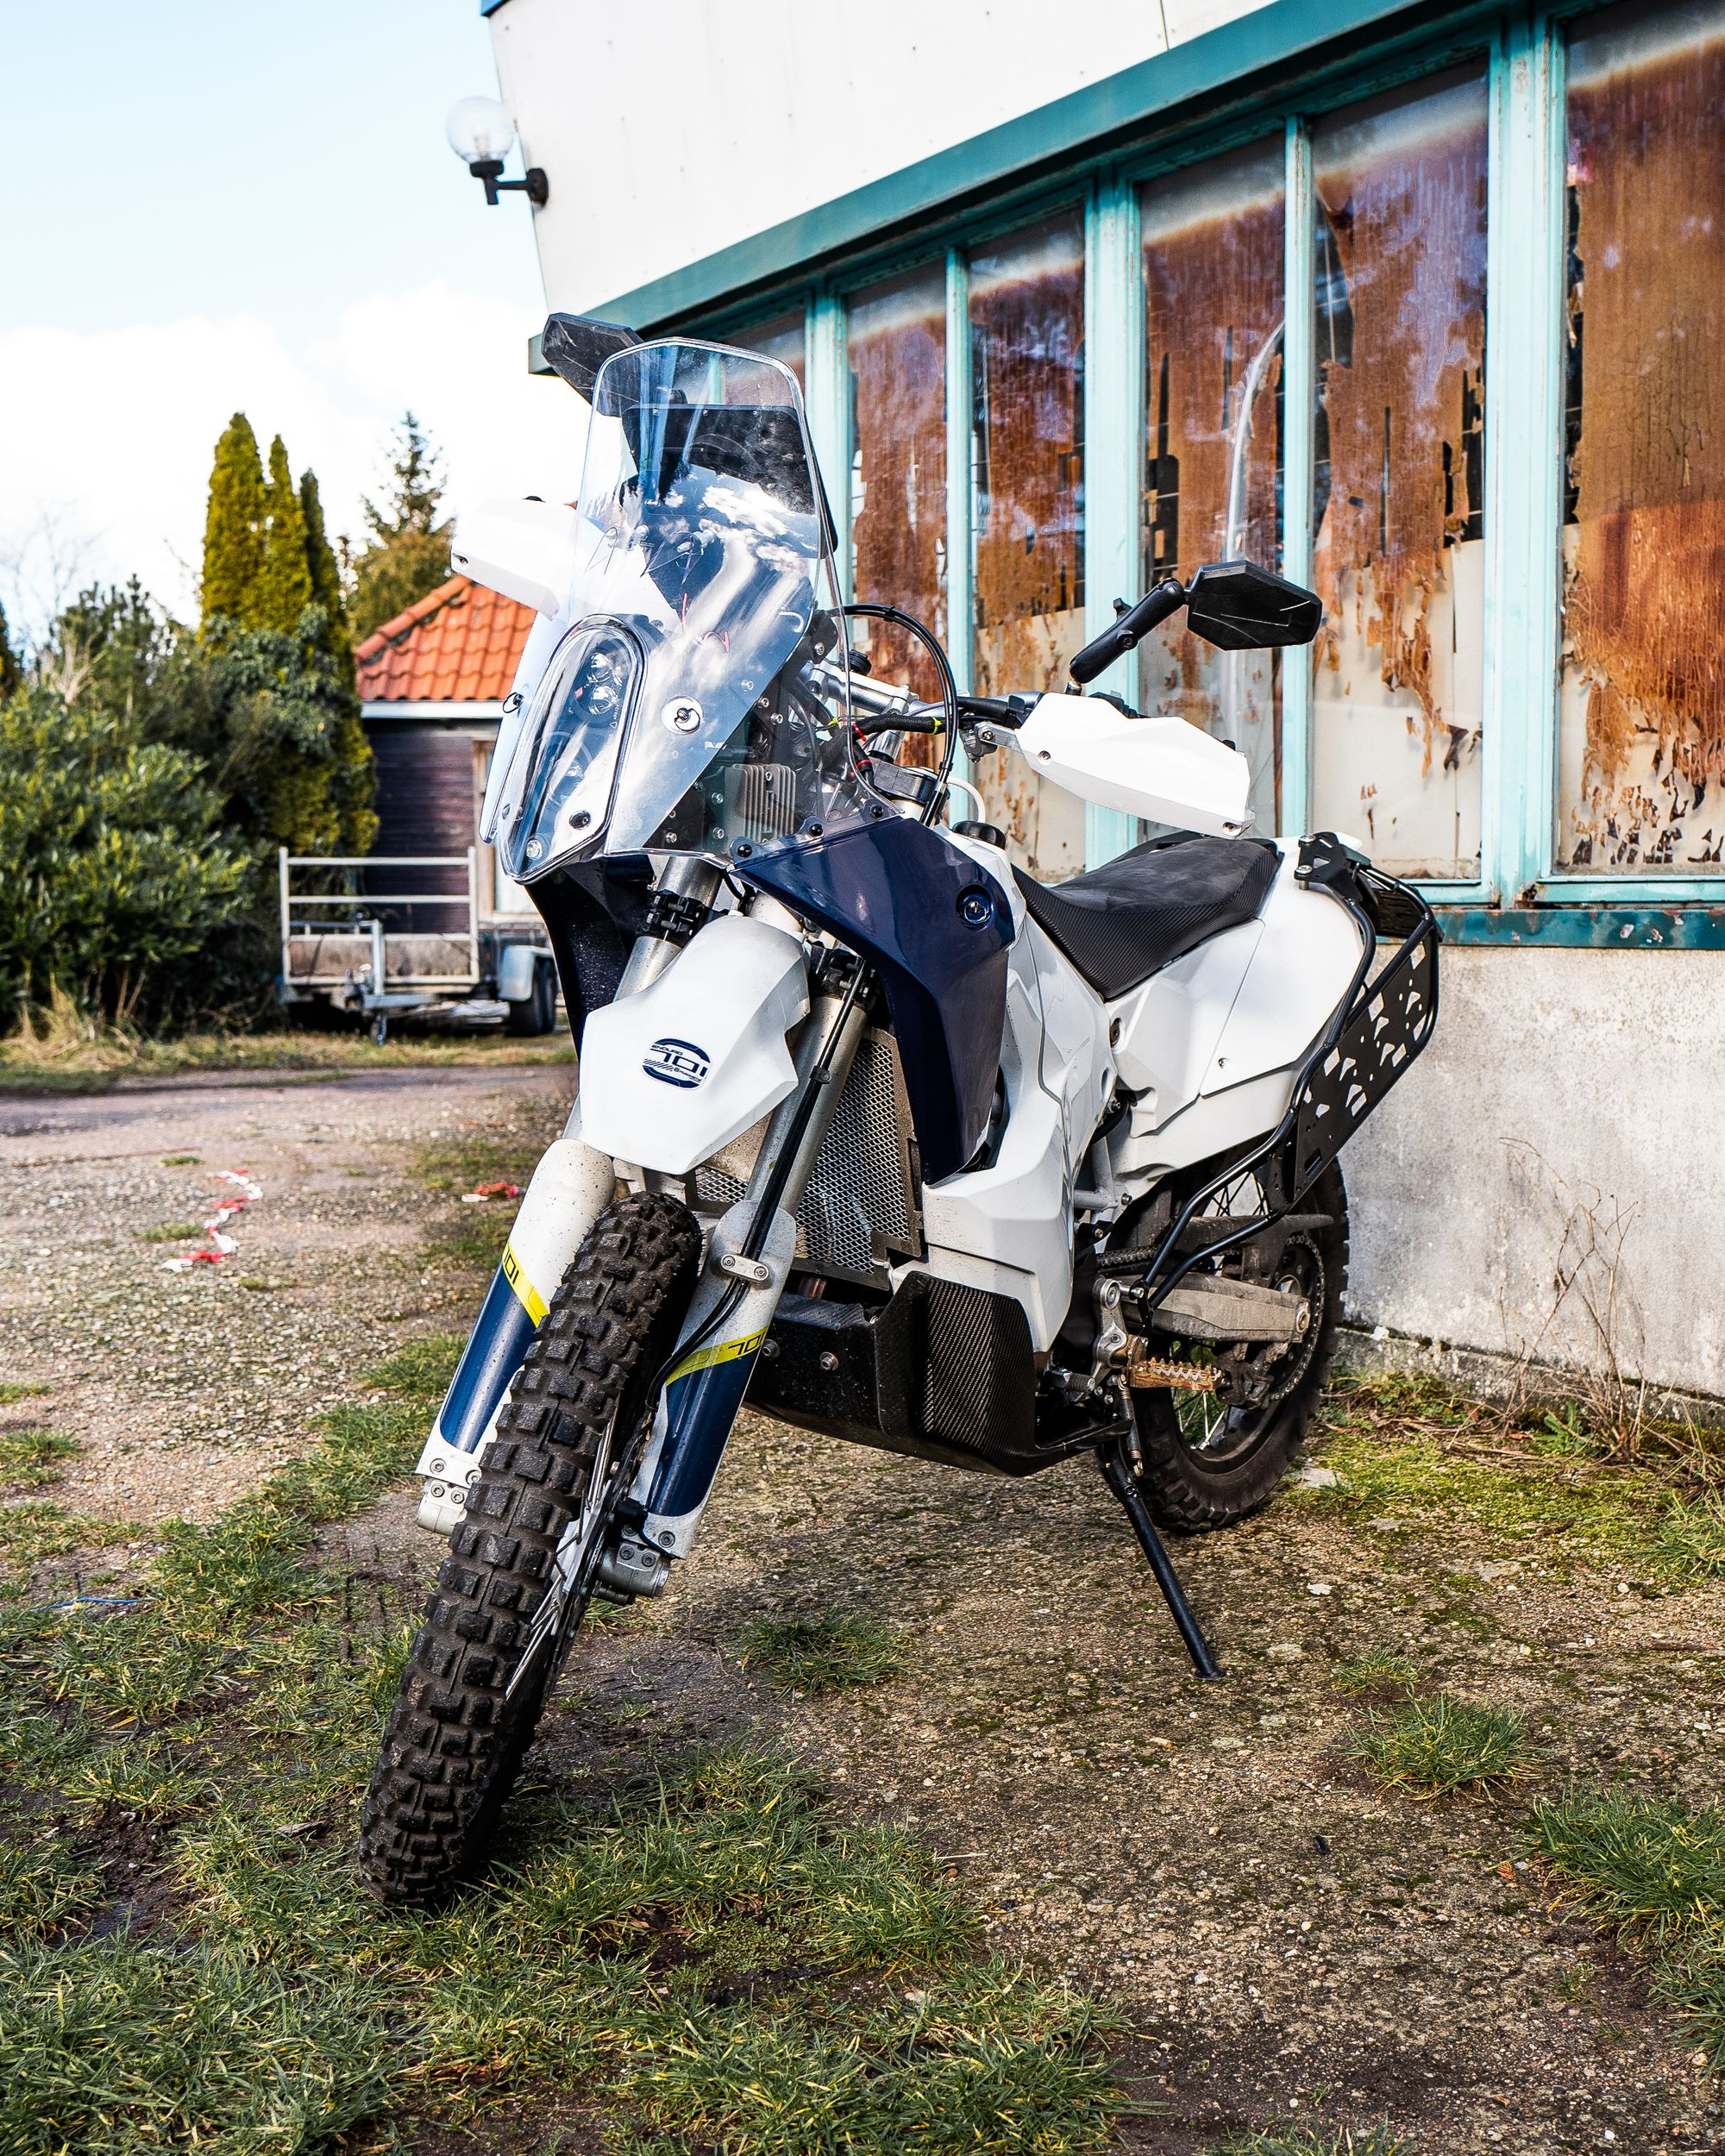 Long term review of the 2018 Husqvarna 701